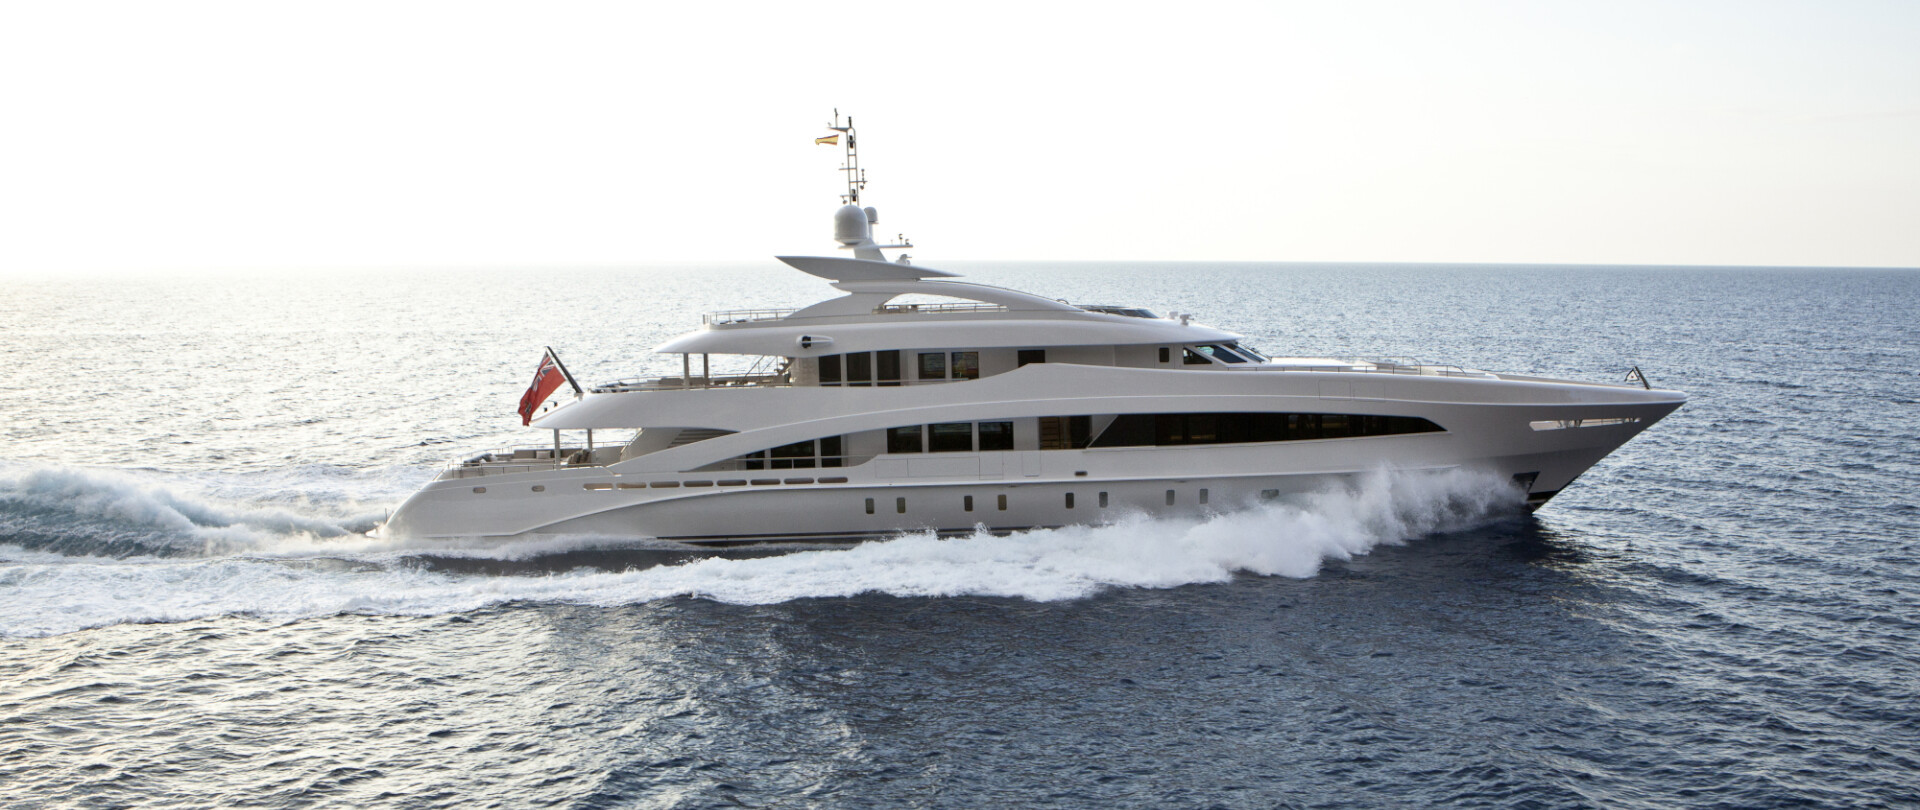 Septimus - New CA for sale | attending FLIBS photo 1